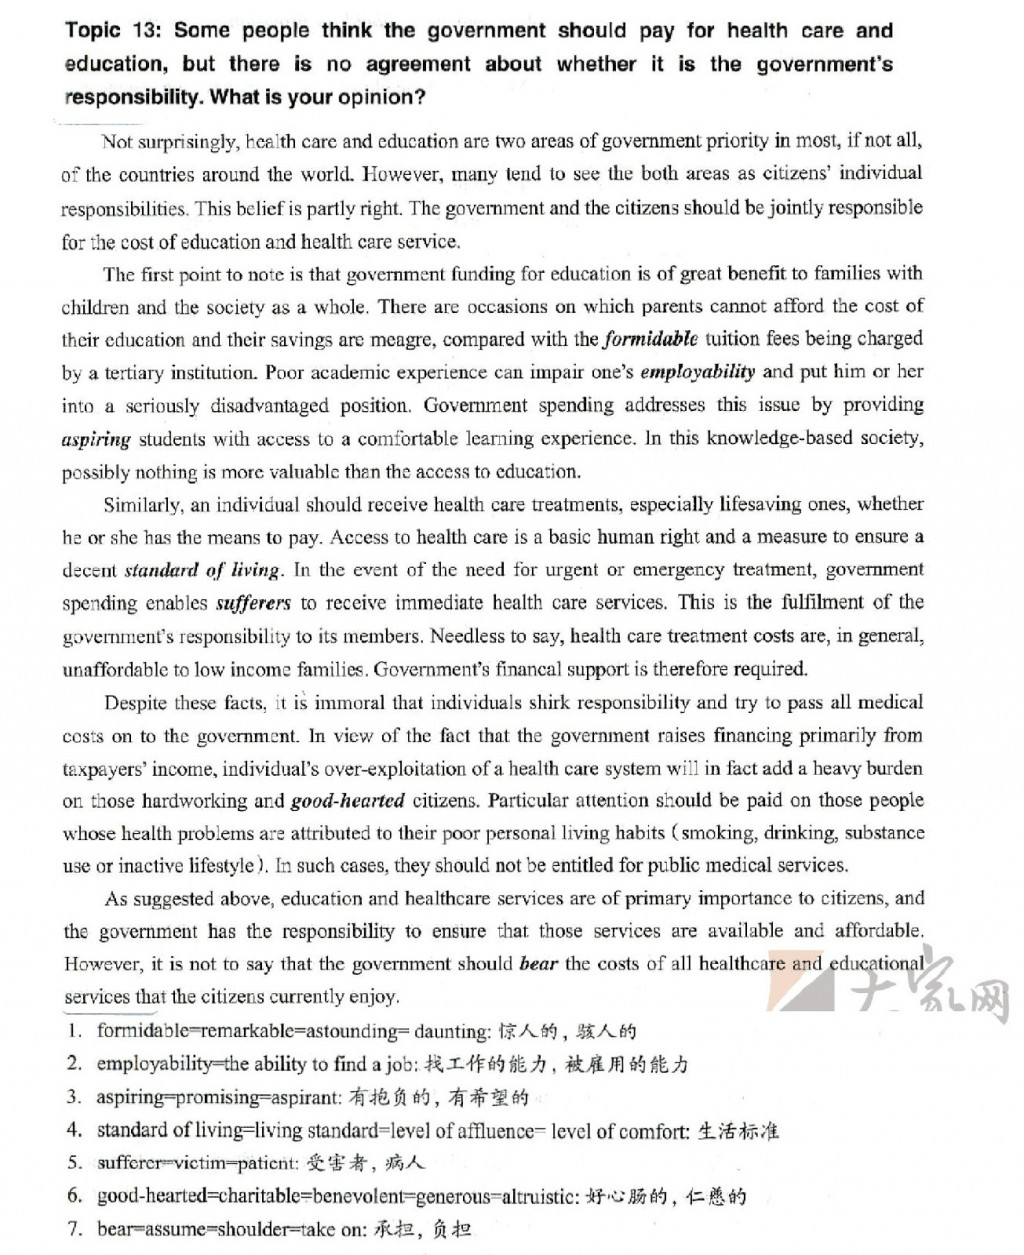 005 Essay Example Topics In Writing Unbelievable Interesting For Competition Hindi Ielts With Answers Pdf Large